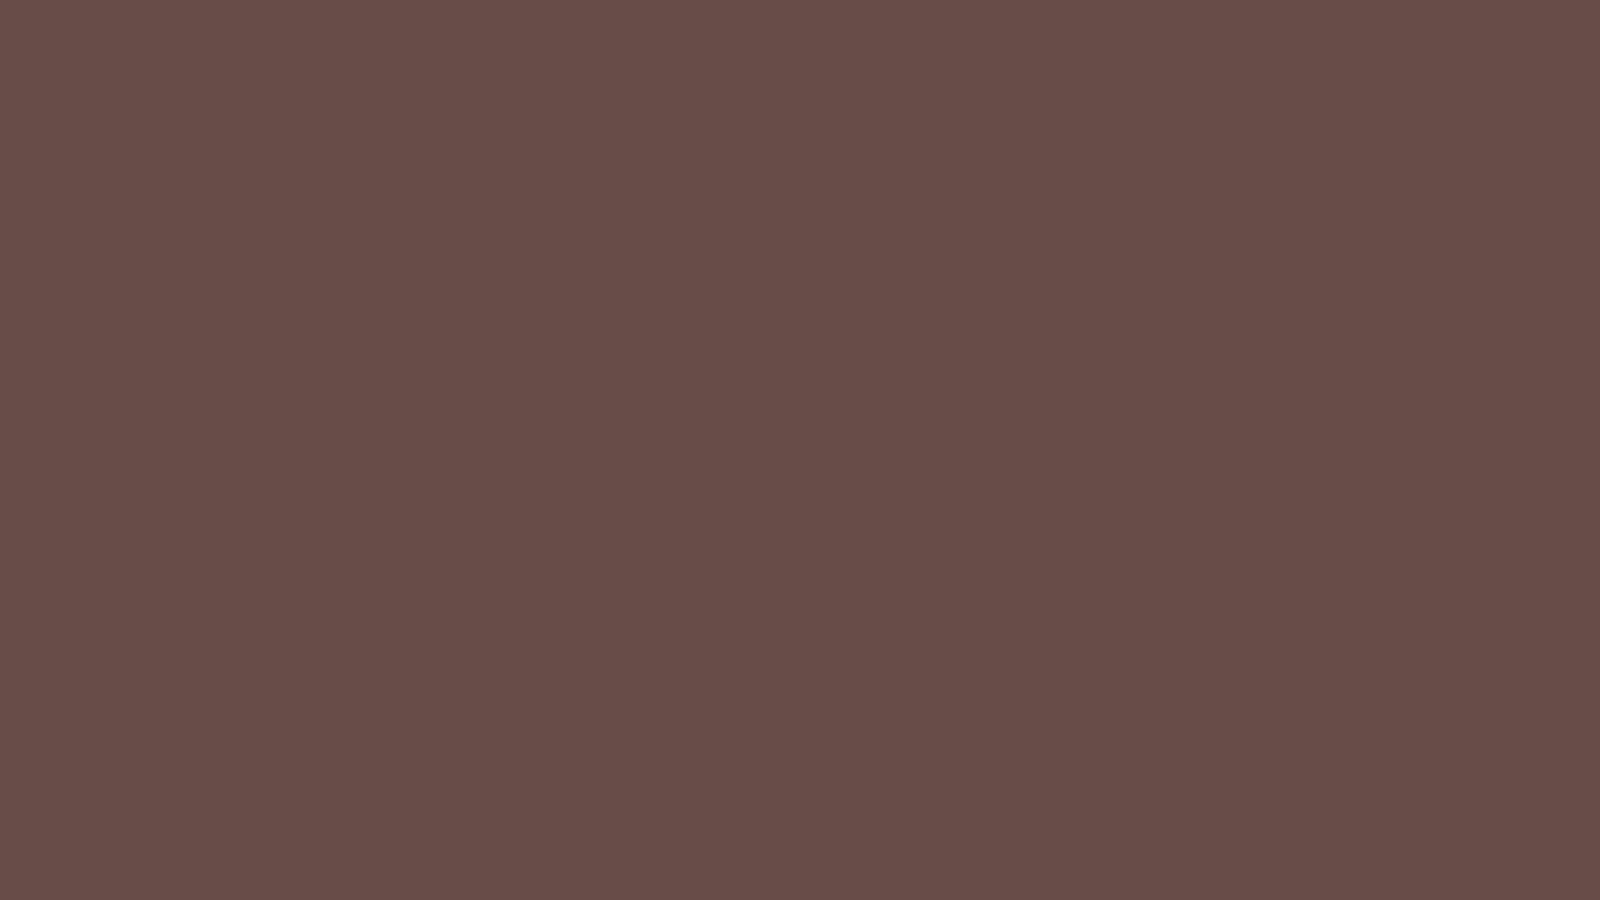 1600x900 Medium Taupe Solid Color Background